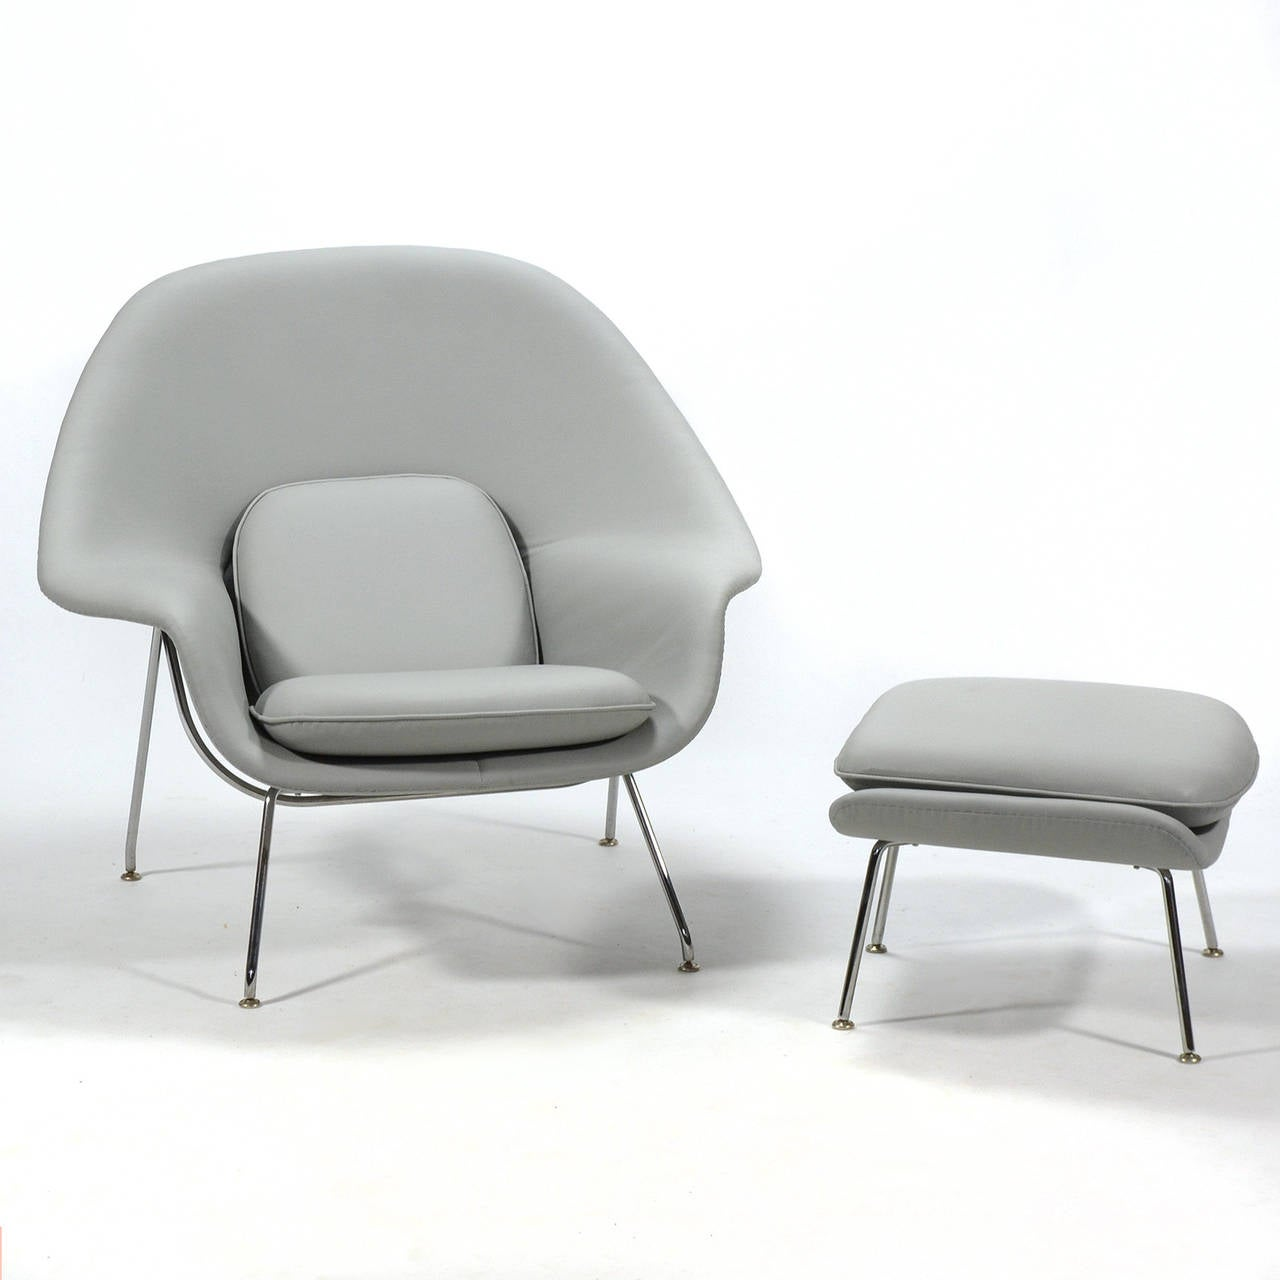 Eero Saarinen Womb Chair and Ottoman in Leather by Knoll at 1stdibs - Eero Saarinen Womb Chair and Ottoman in Leather by Knoll 2